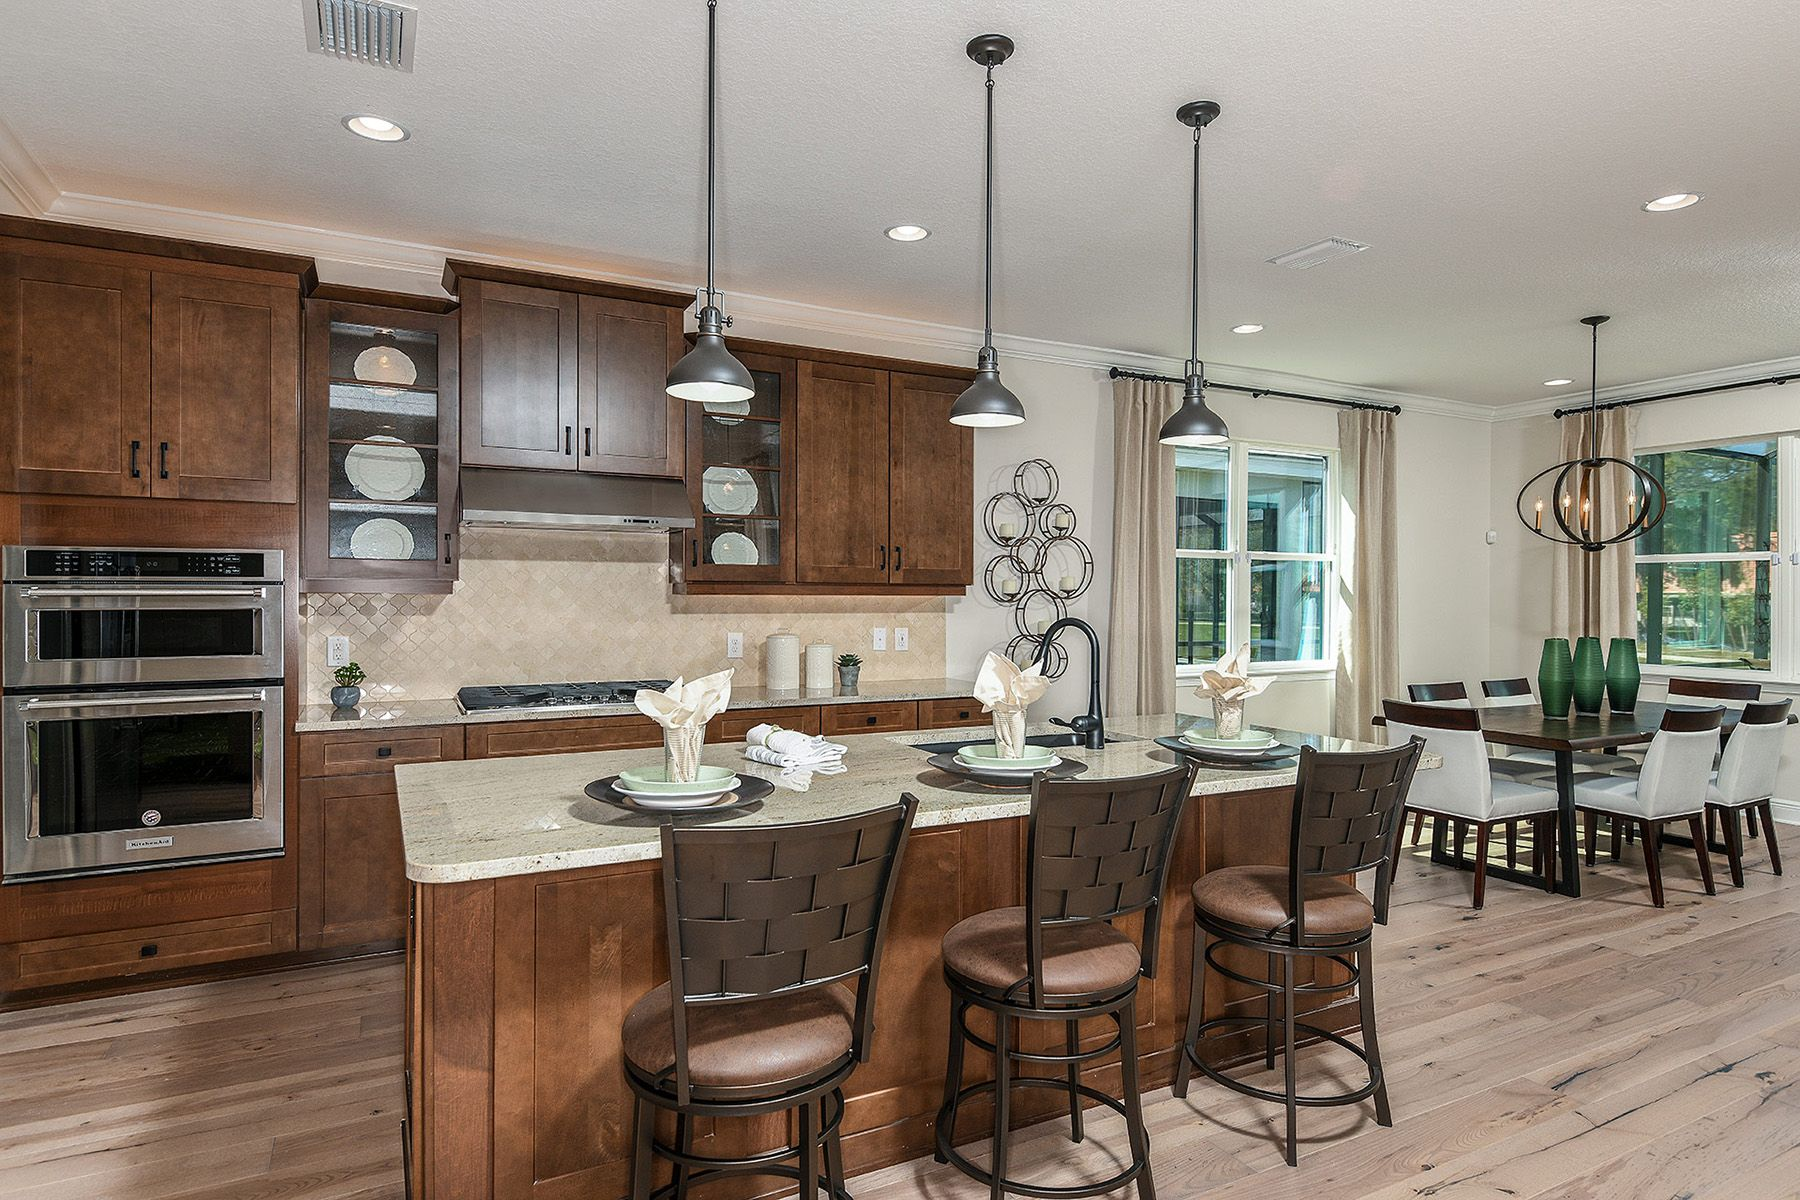 Kitchen featured in the Alee By Mattamy Homes in Naples, FL